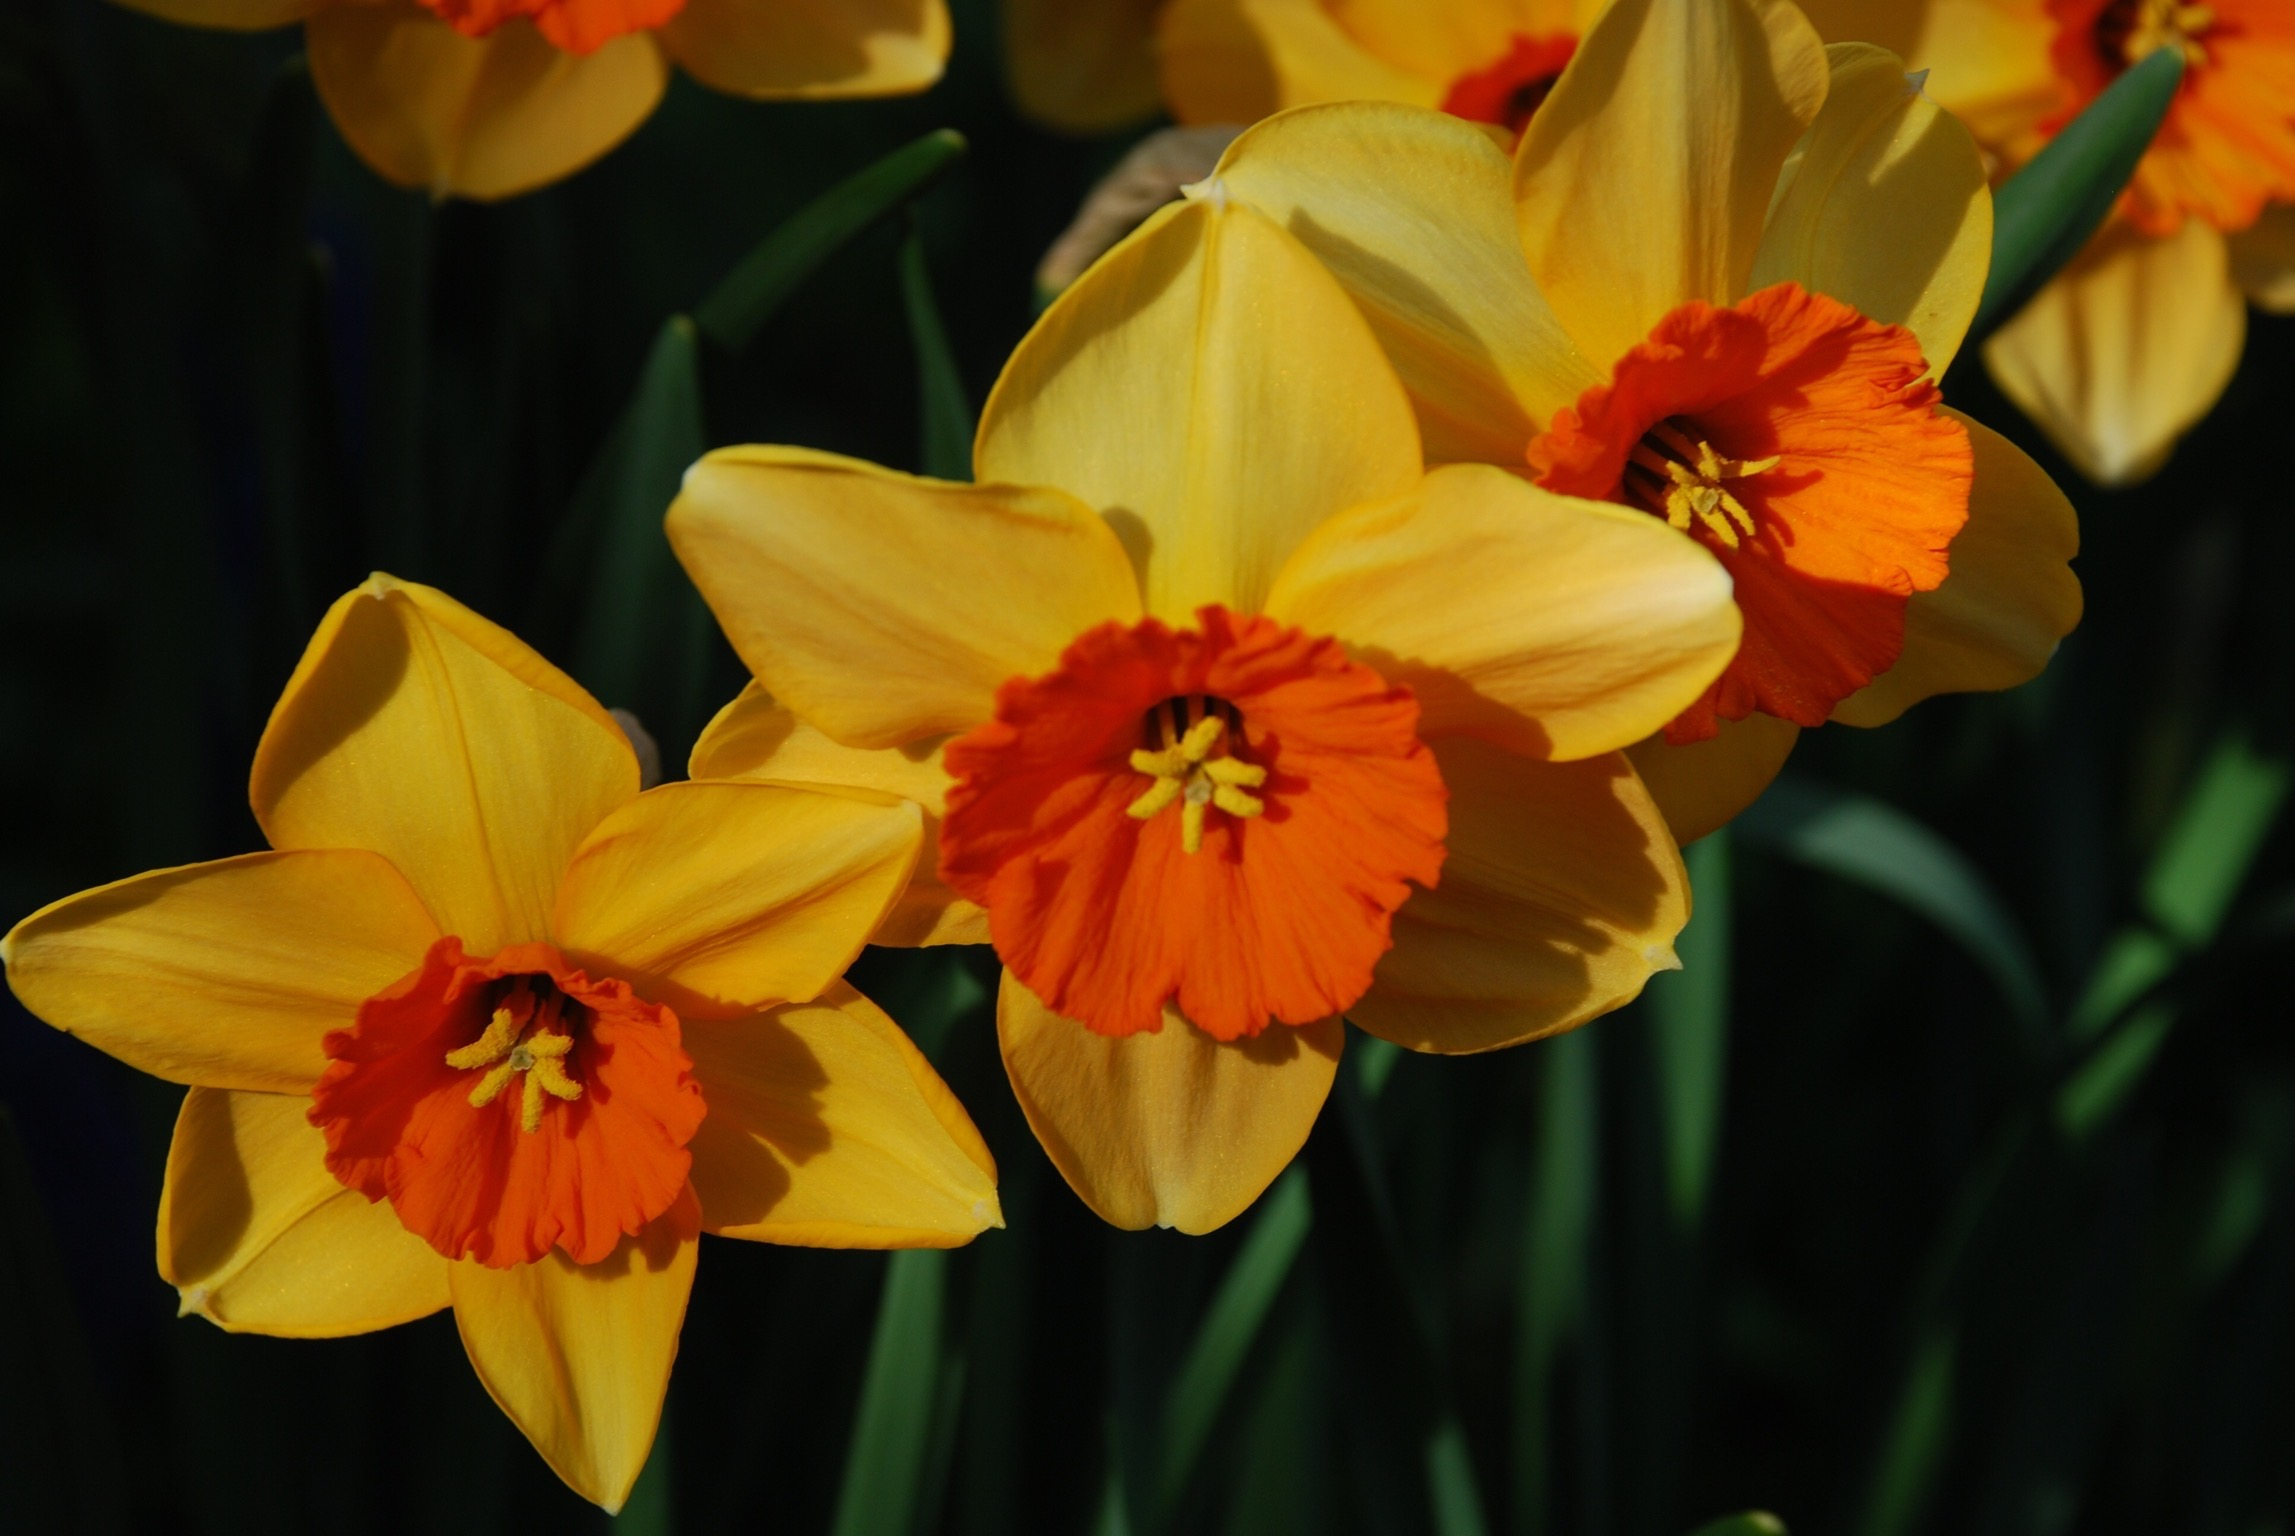 daffodils in London cottage garden